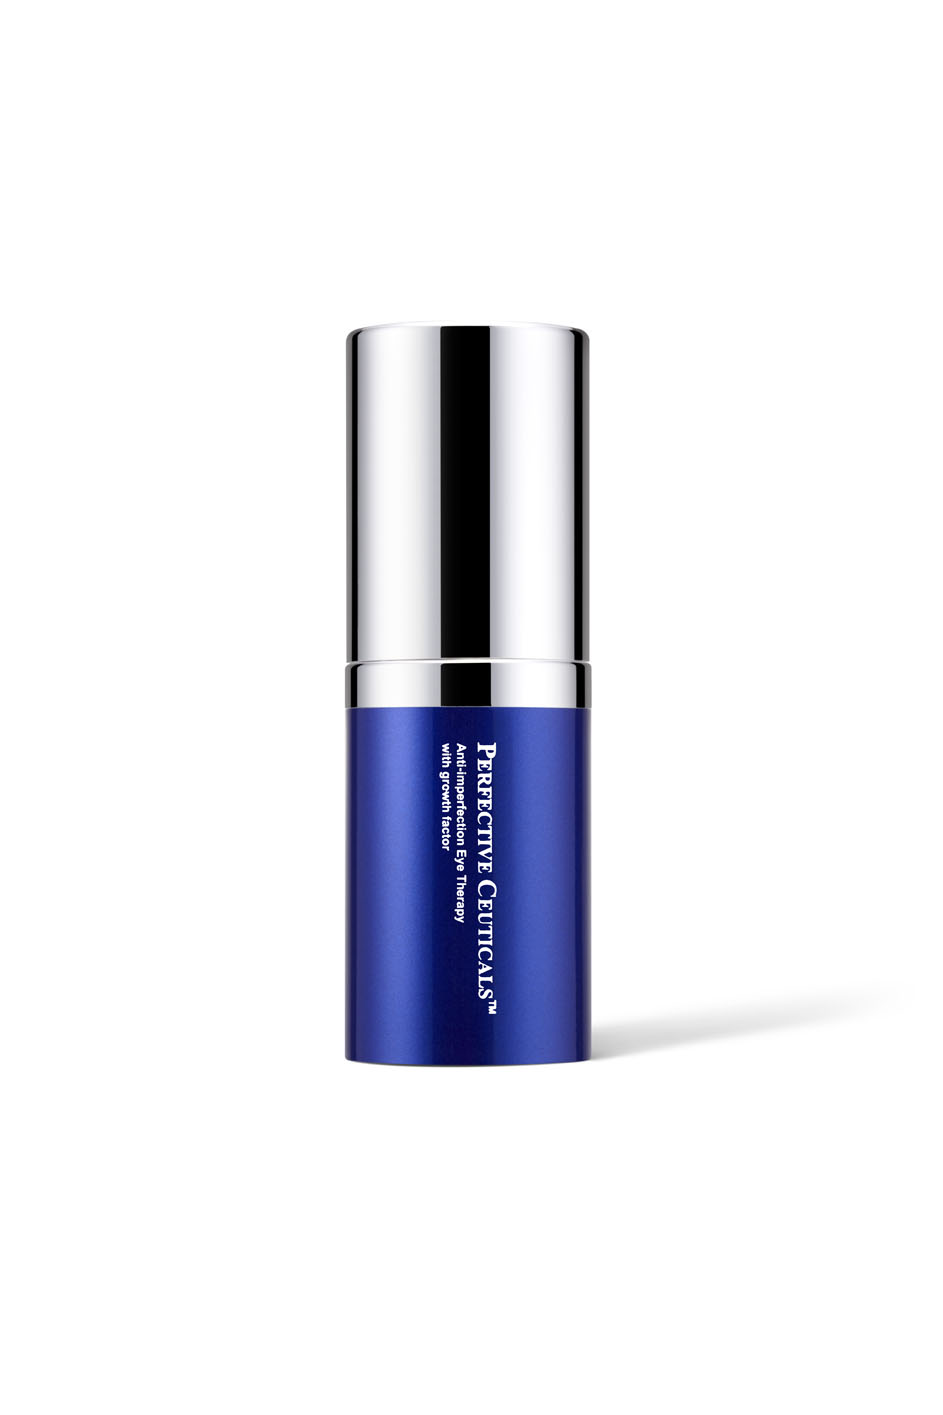 Perfective Ceuticals' Anti-imperfection Eye Therapy Cream with Growth Factor